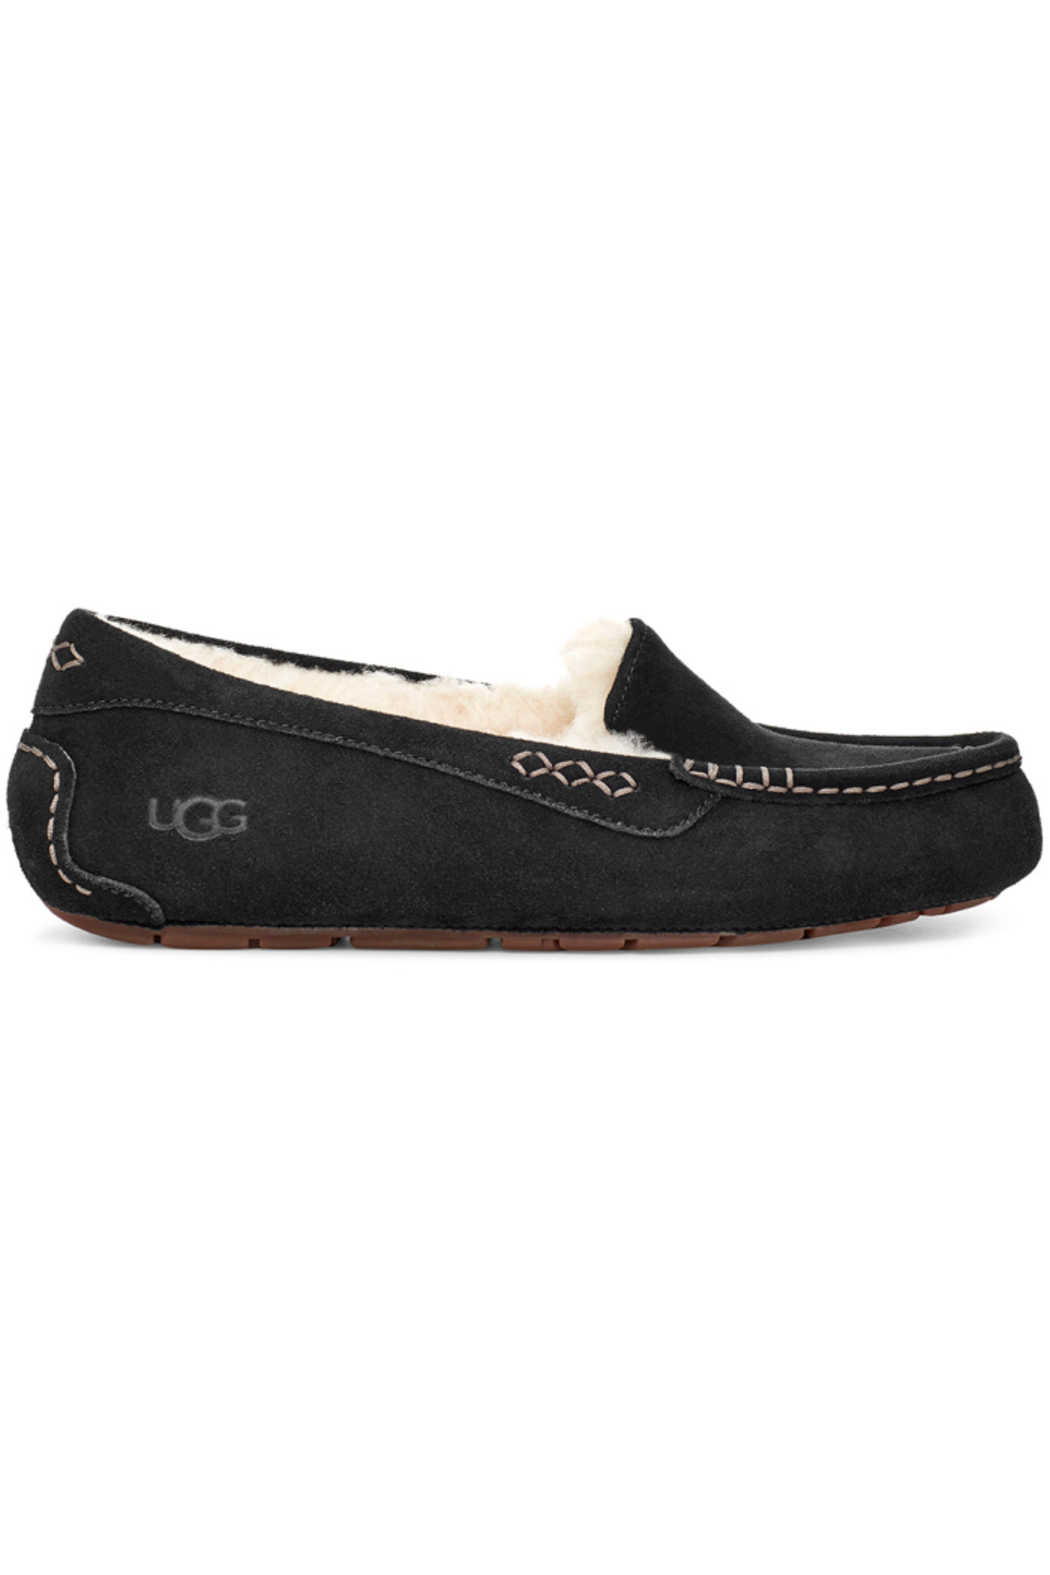 Ugg Women's Ansley Slipper - Front Cropped Image